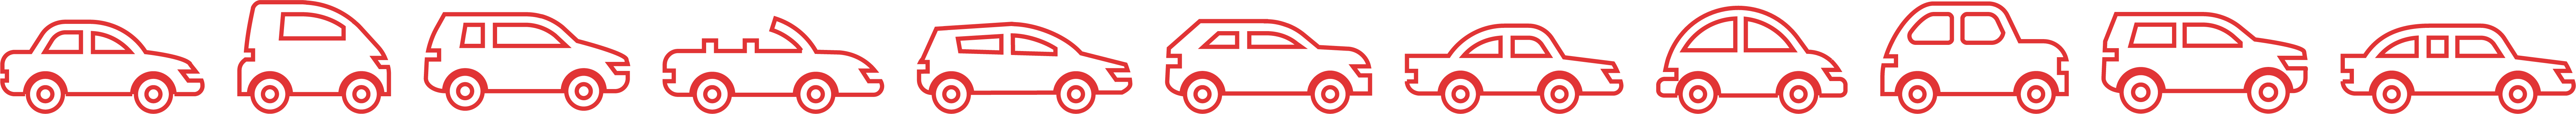 cars icons red